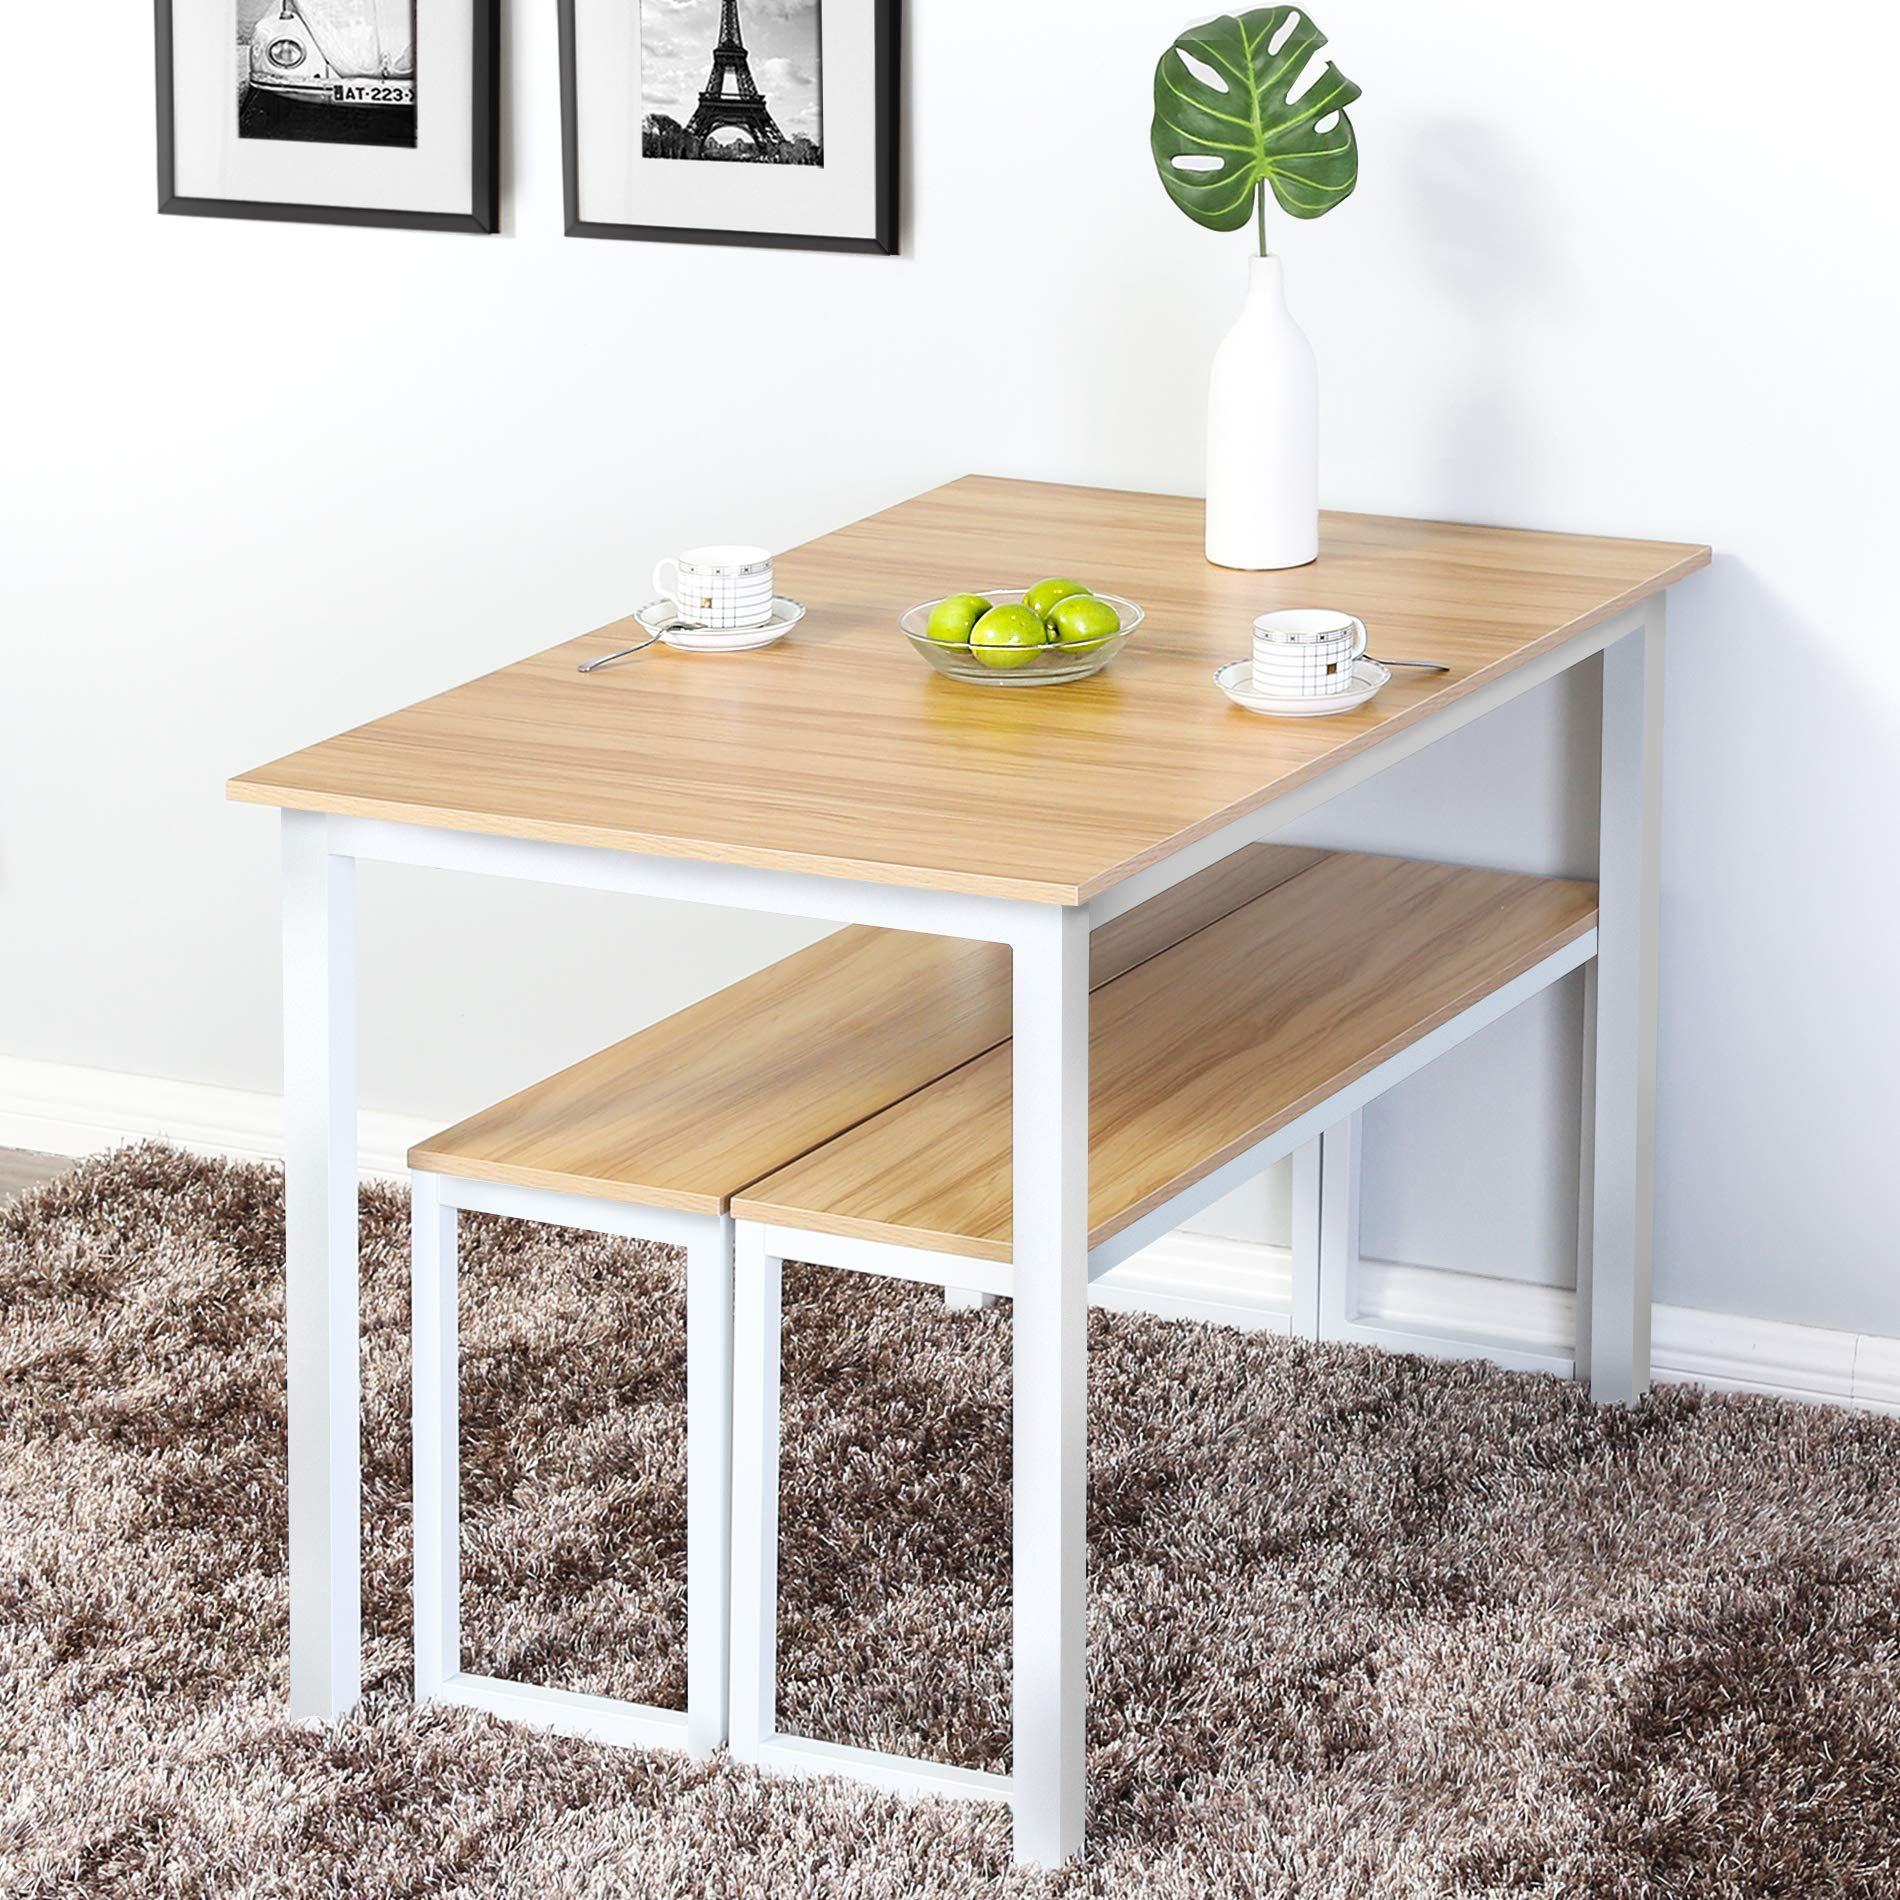 Homury 3 Piece Dining Table Set Breakfast Nook Dining Table With Two Benches Check Out The Image By Visit In 2020 Nook Dining Set Dining Room Small Small Dining Sets